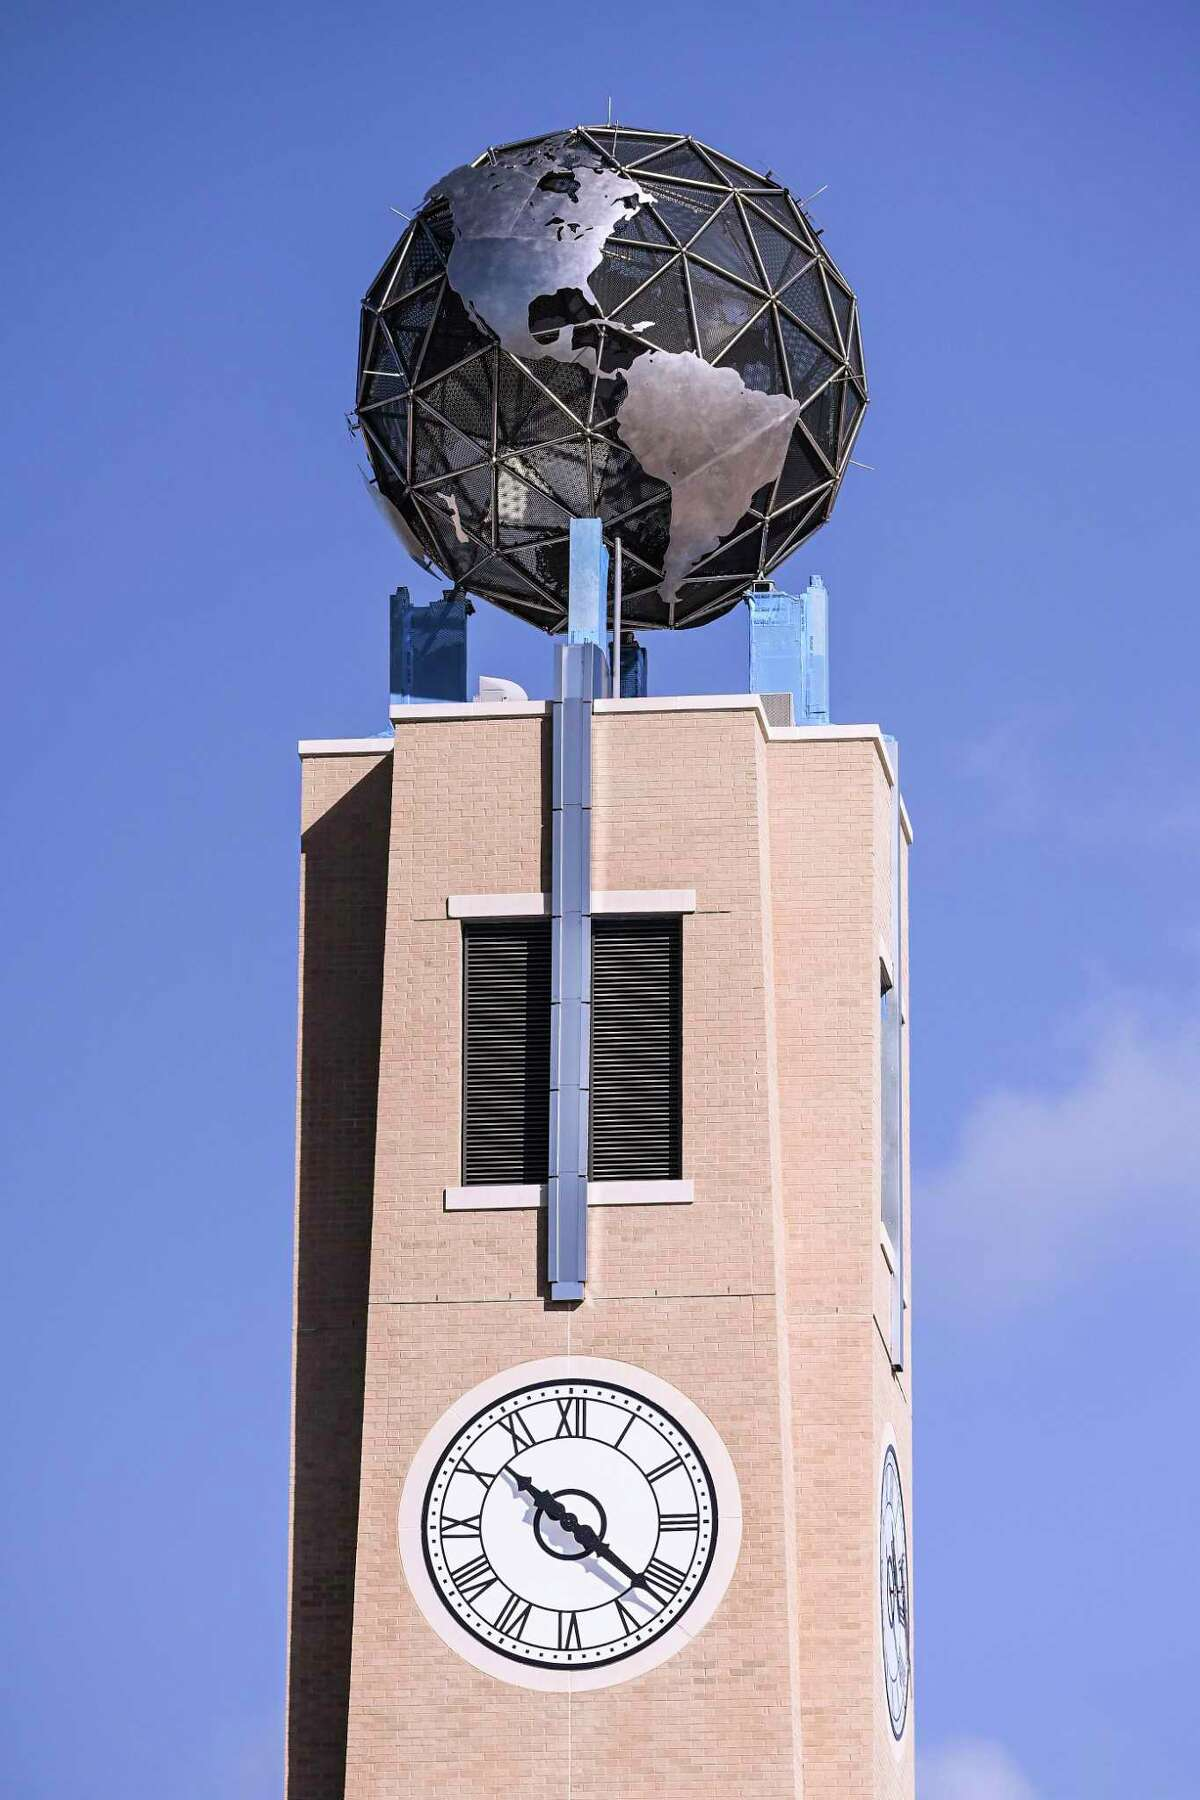 A view of the TAMIU clock tower as seen on Saturday, Feb. 8, 2020.